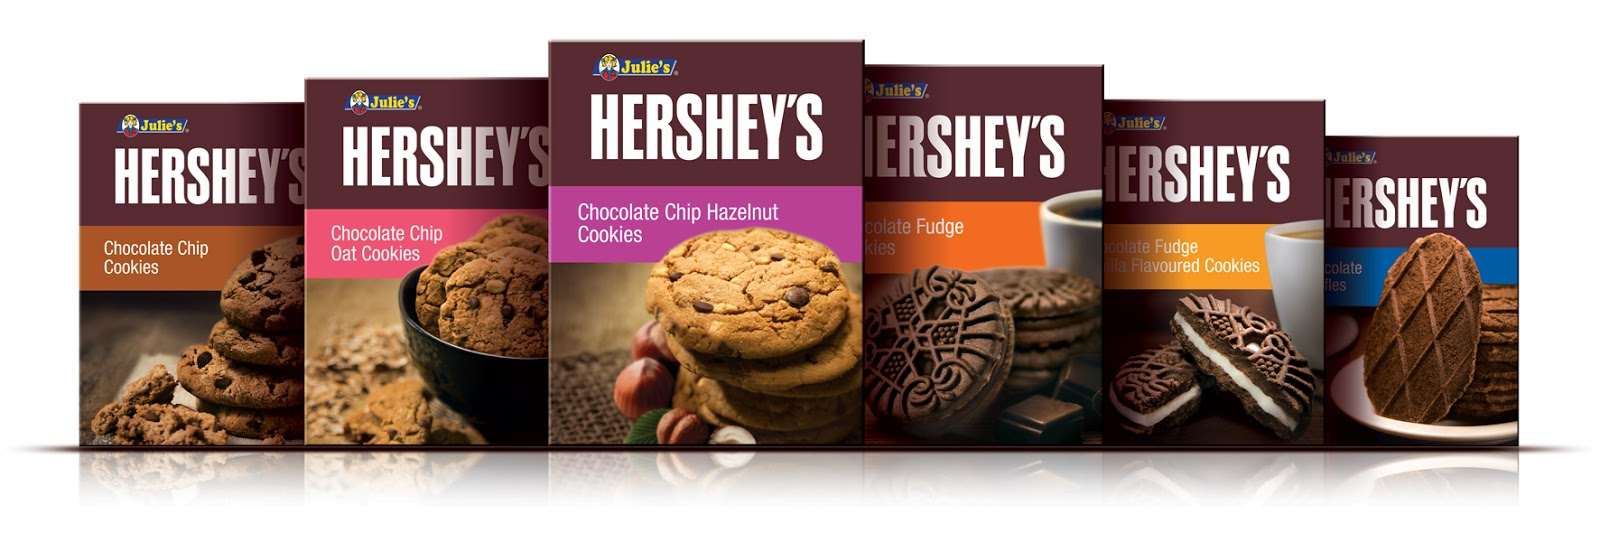 Six new Julie's Hershey's Cookies